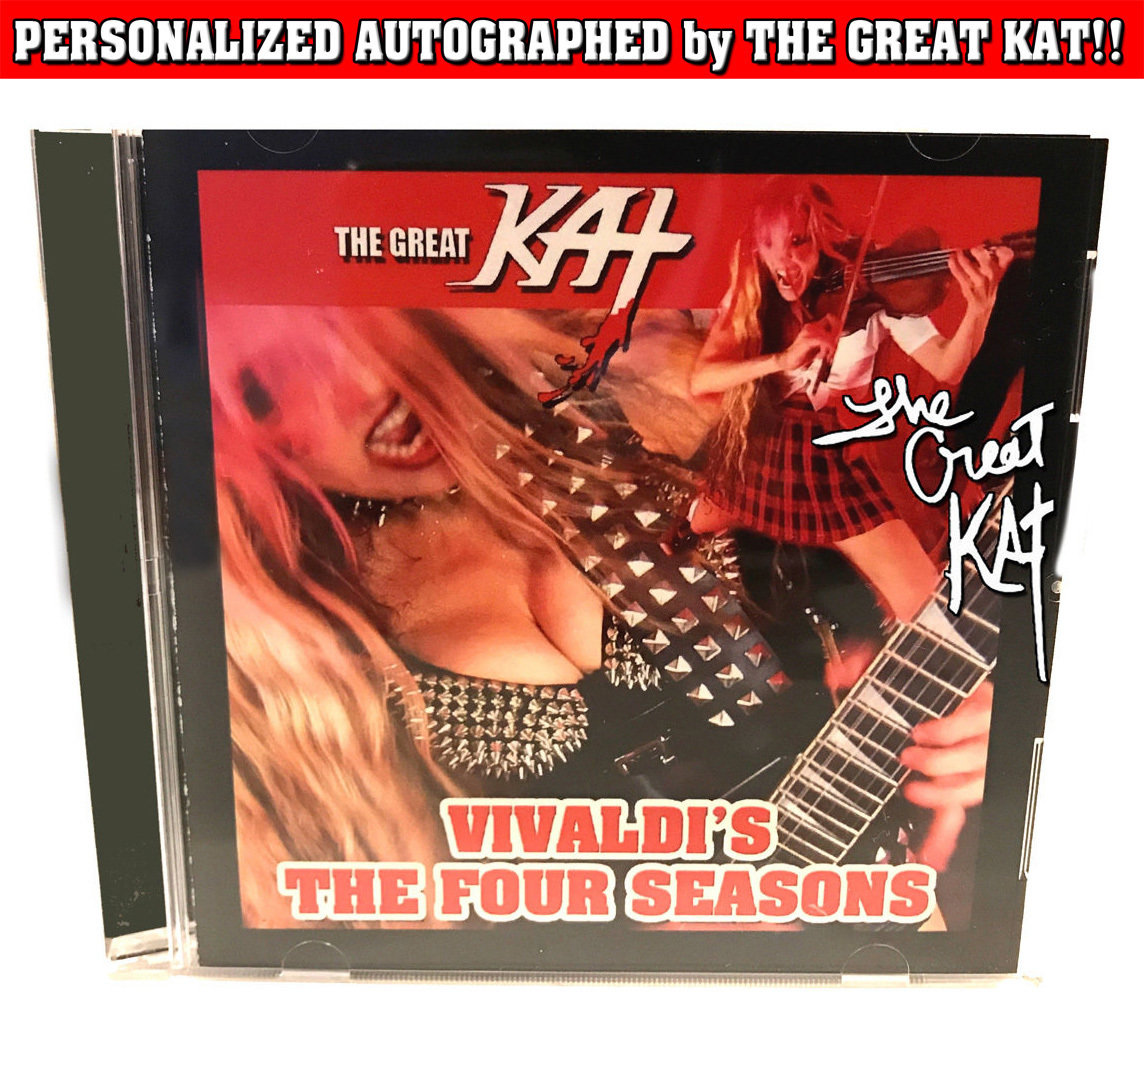 """VIVALDI'S THE FOUR SEASONS"" SINGLE Music CD (2:12)! PERSONALIZED AUTOGRAPHED by THE GREAT KAT! (Signed to Customer's Name)"